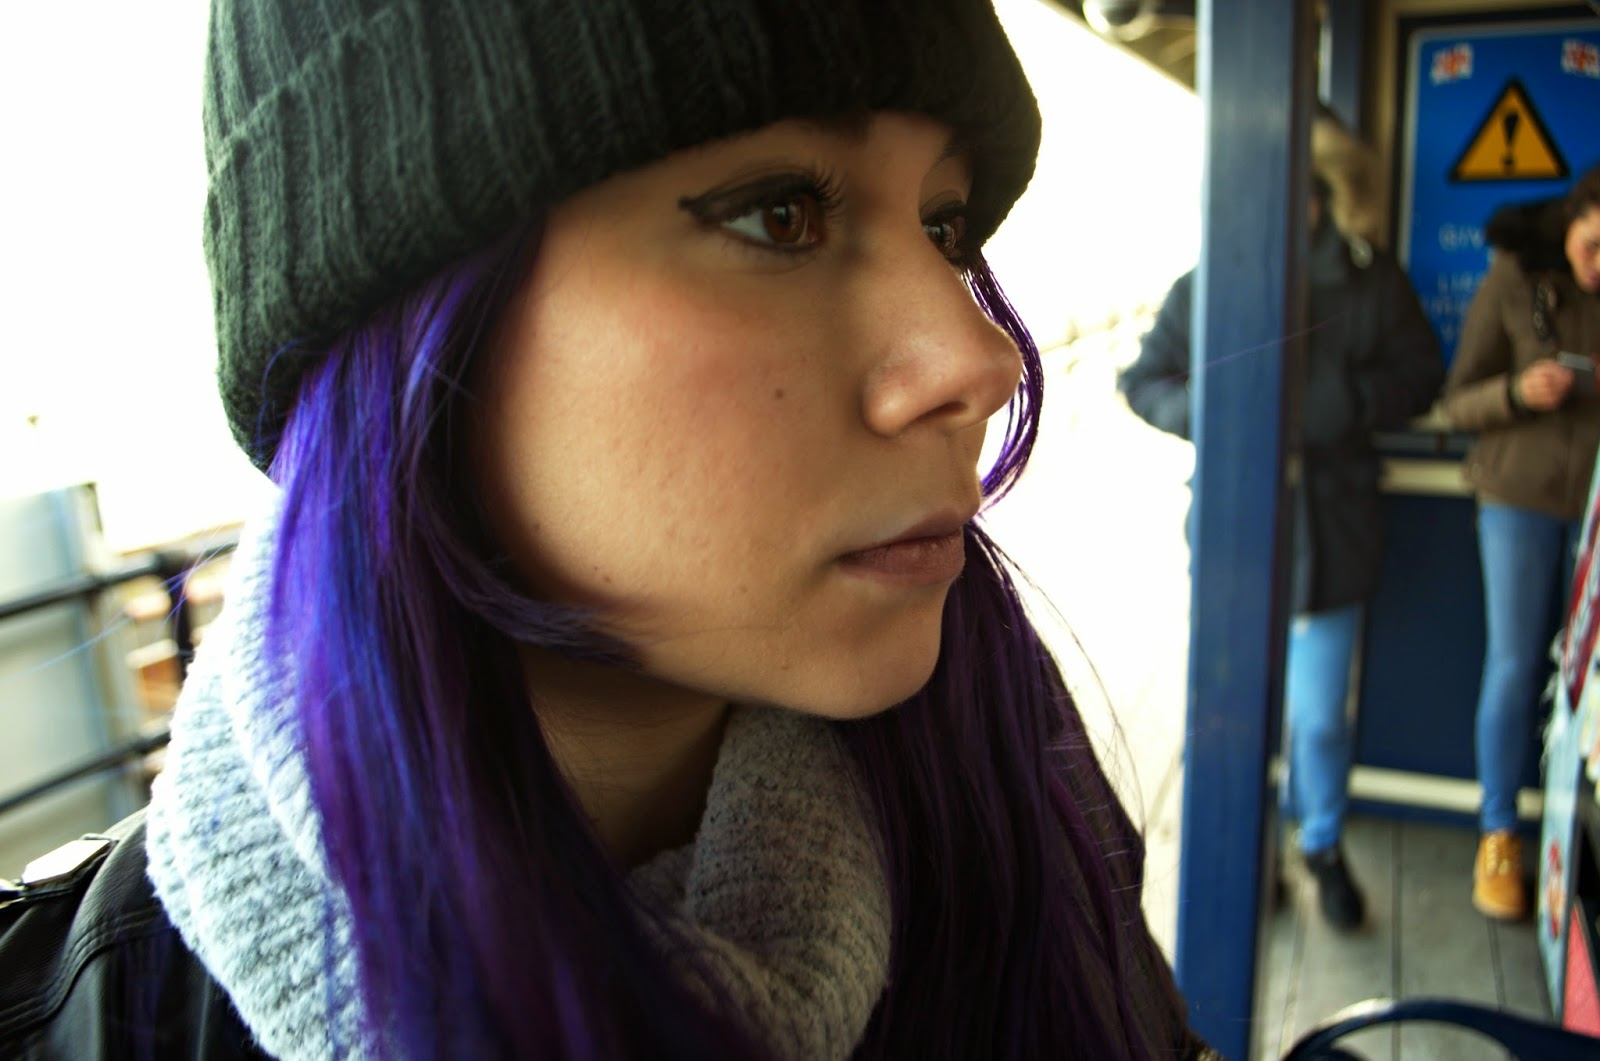 Winter Grunge Grey and Black Outfit of the Day. Purple Hair